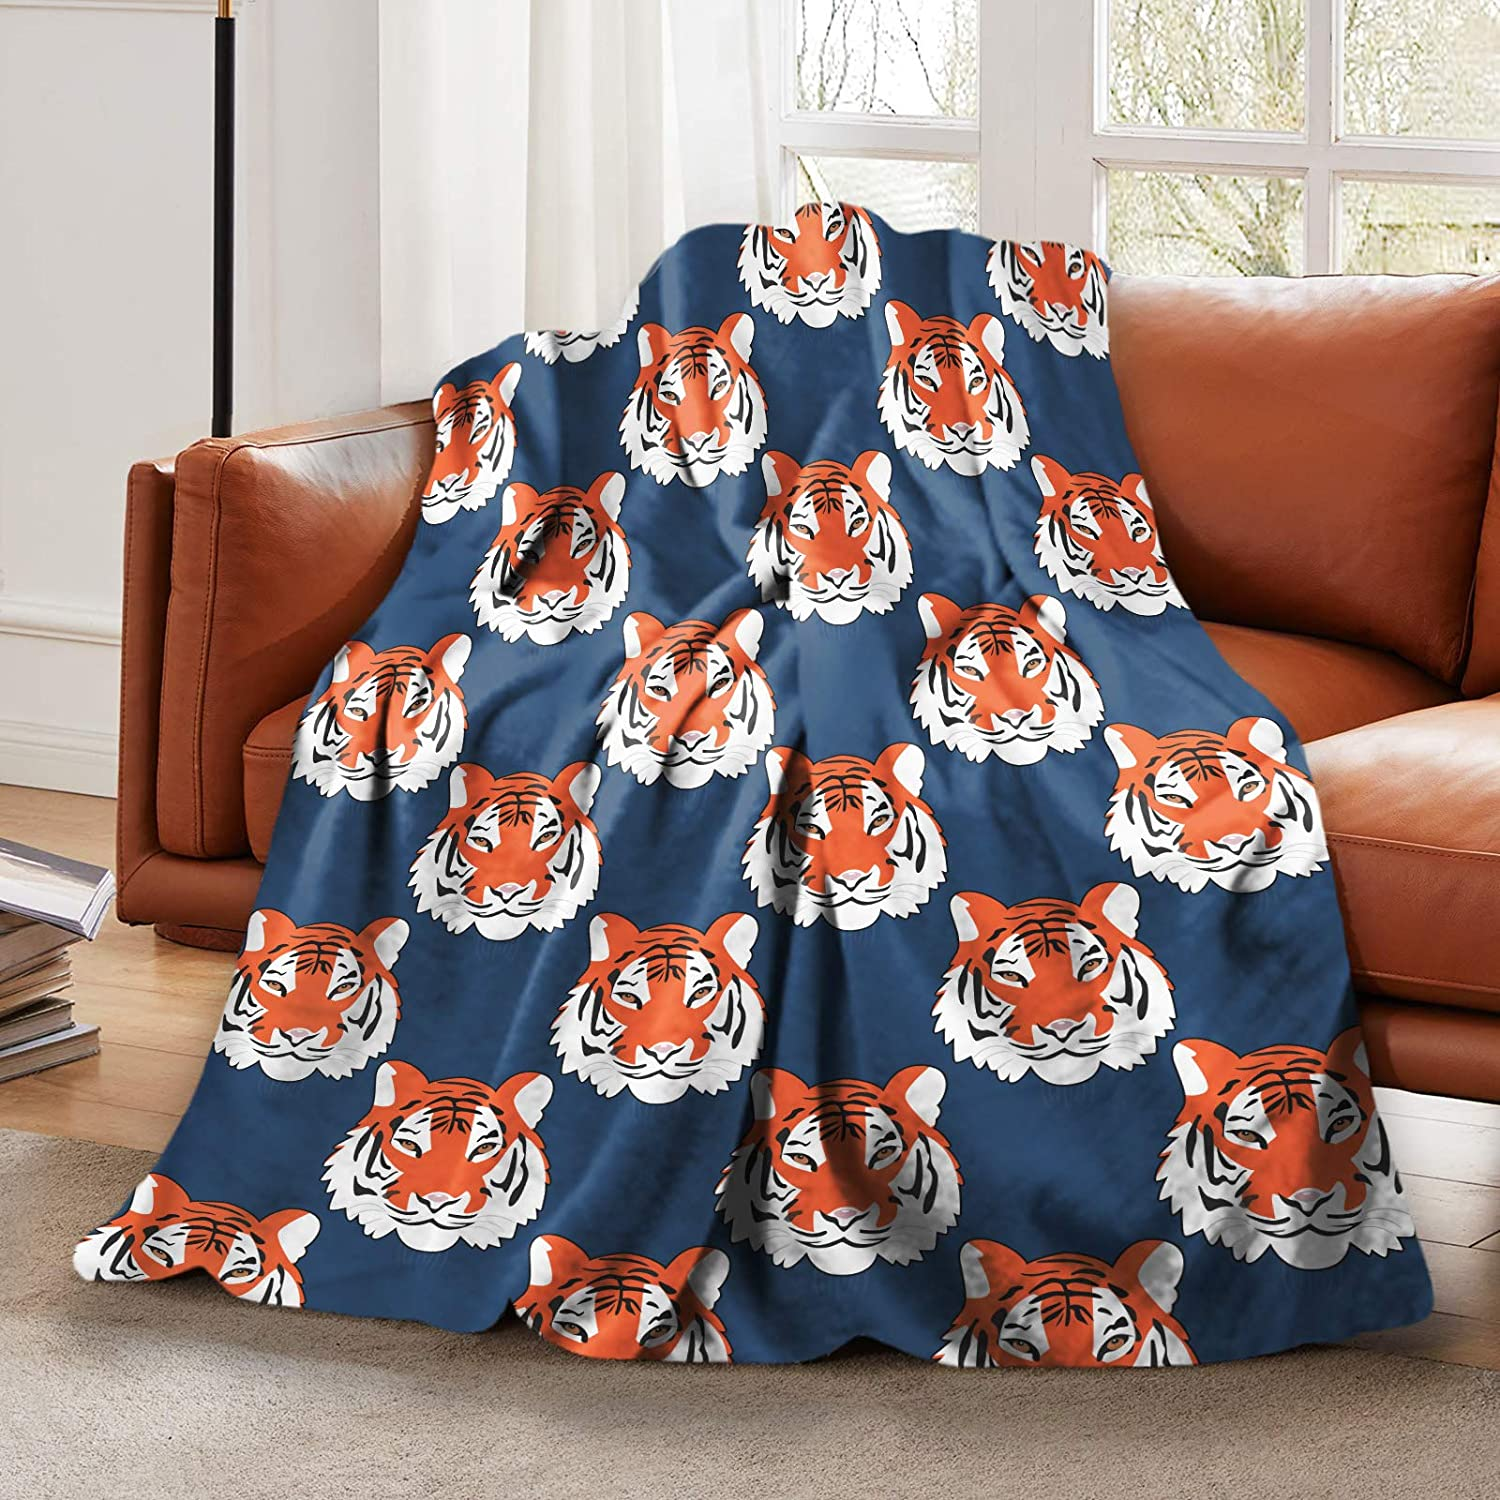 LELEMATE Plush Fluffy Throw Blanket Jungle Tigers in Auburn Colors Bed Blanket for Boys Girls Teens Smooth Soft Flannel Blanket for Sofa Chair Office Travel Camping Outdoor Home Decor 50